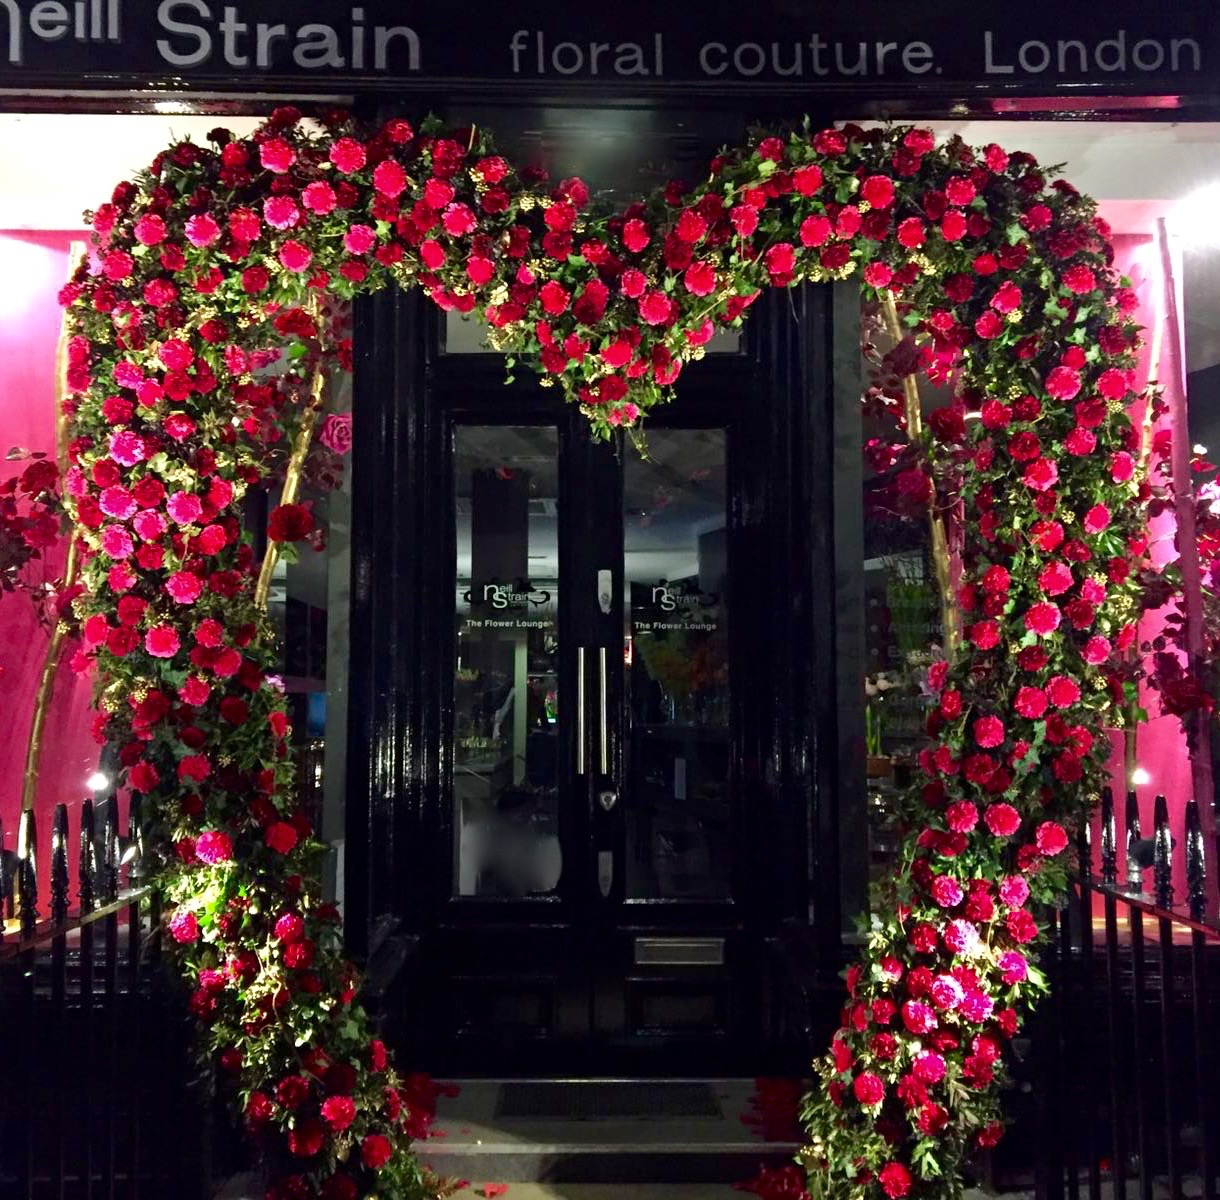 Neill Strain Floral Couture boutique in Belgravia is decked with a giant floral heart of fresh flowers for Valentine's Day